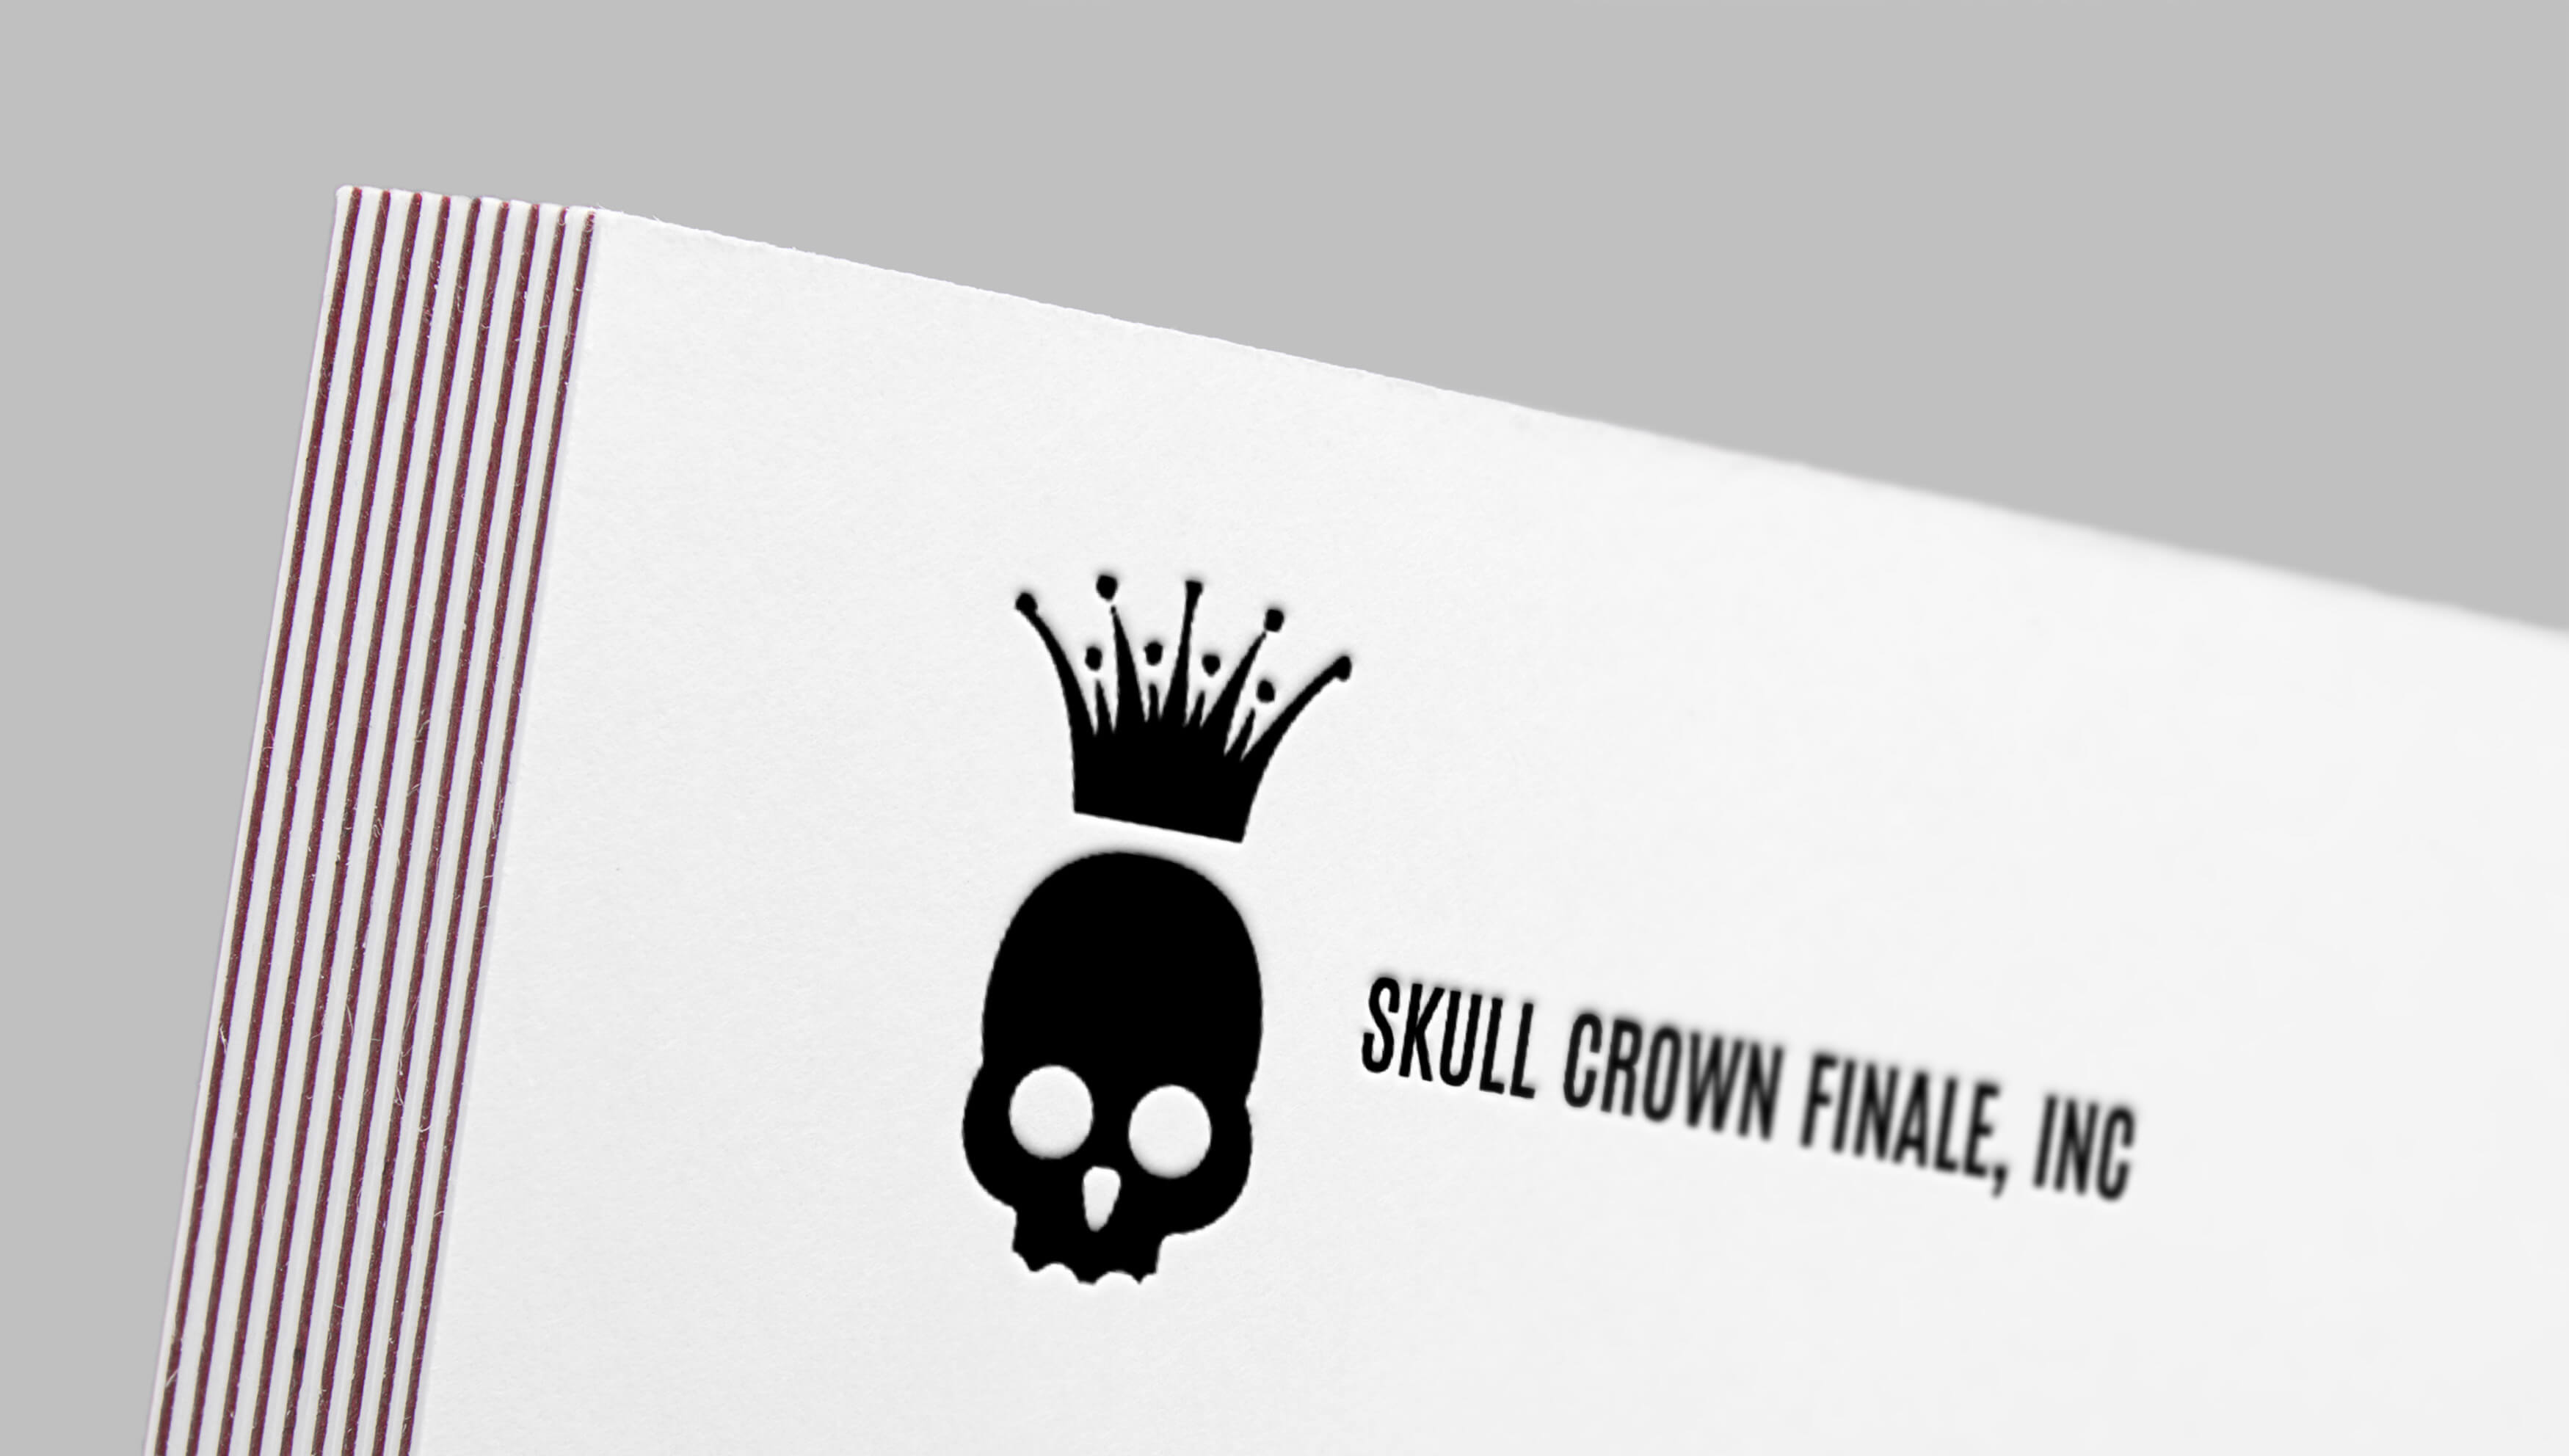 Skull Crown Finale: Stationary